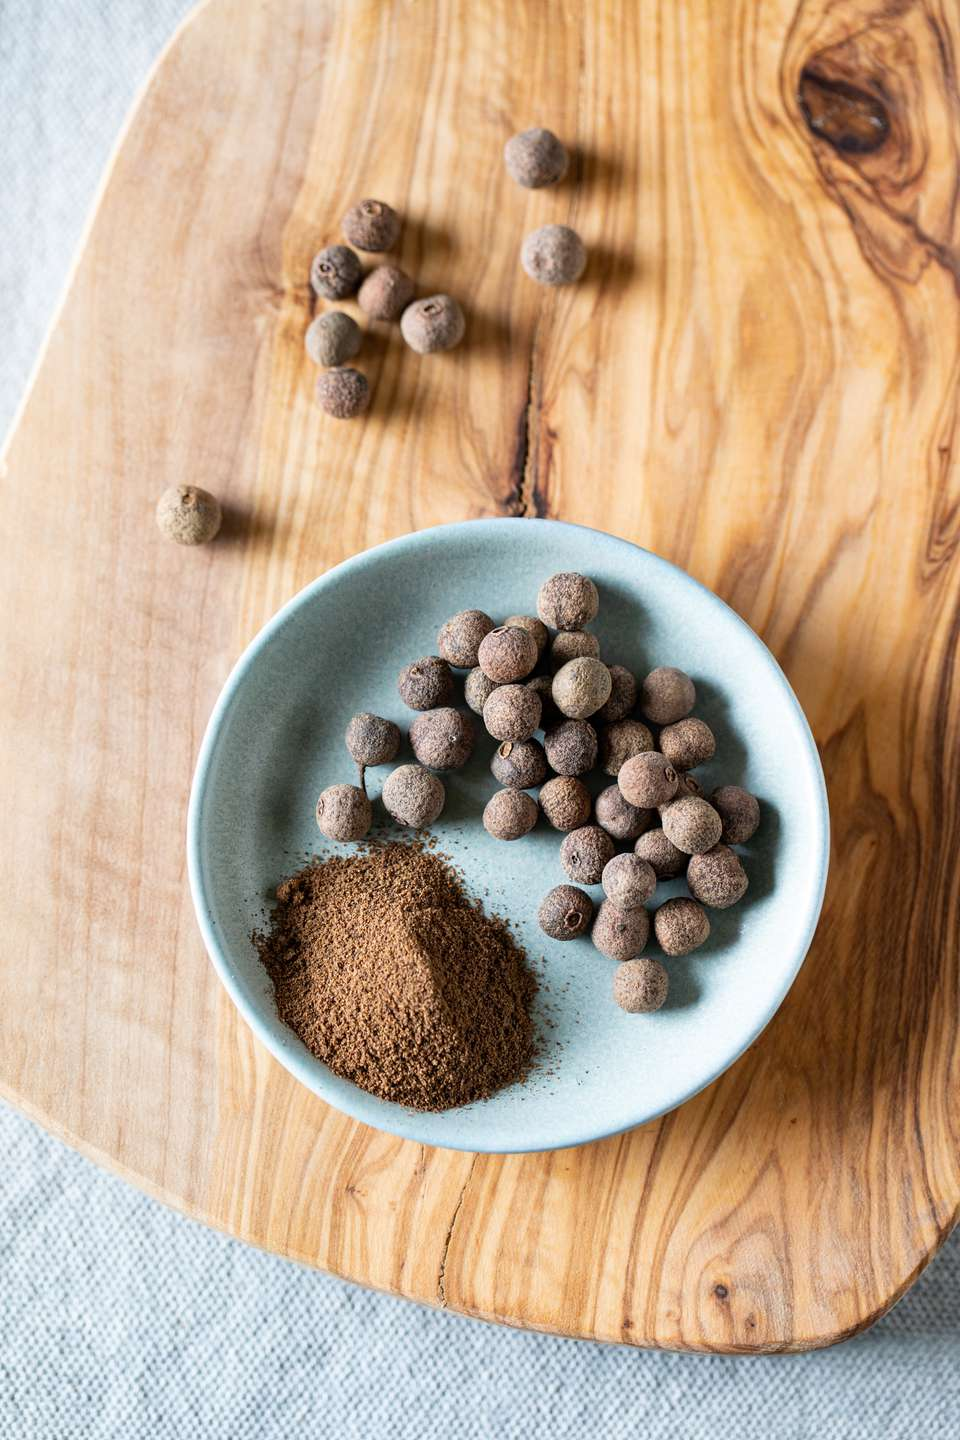 Whole and ground allspice on wooden cutting board